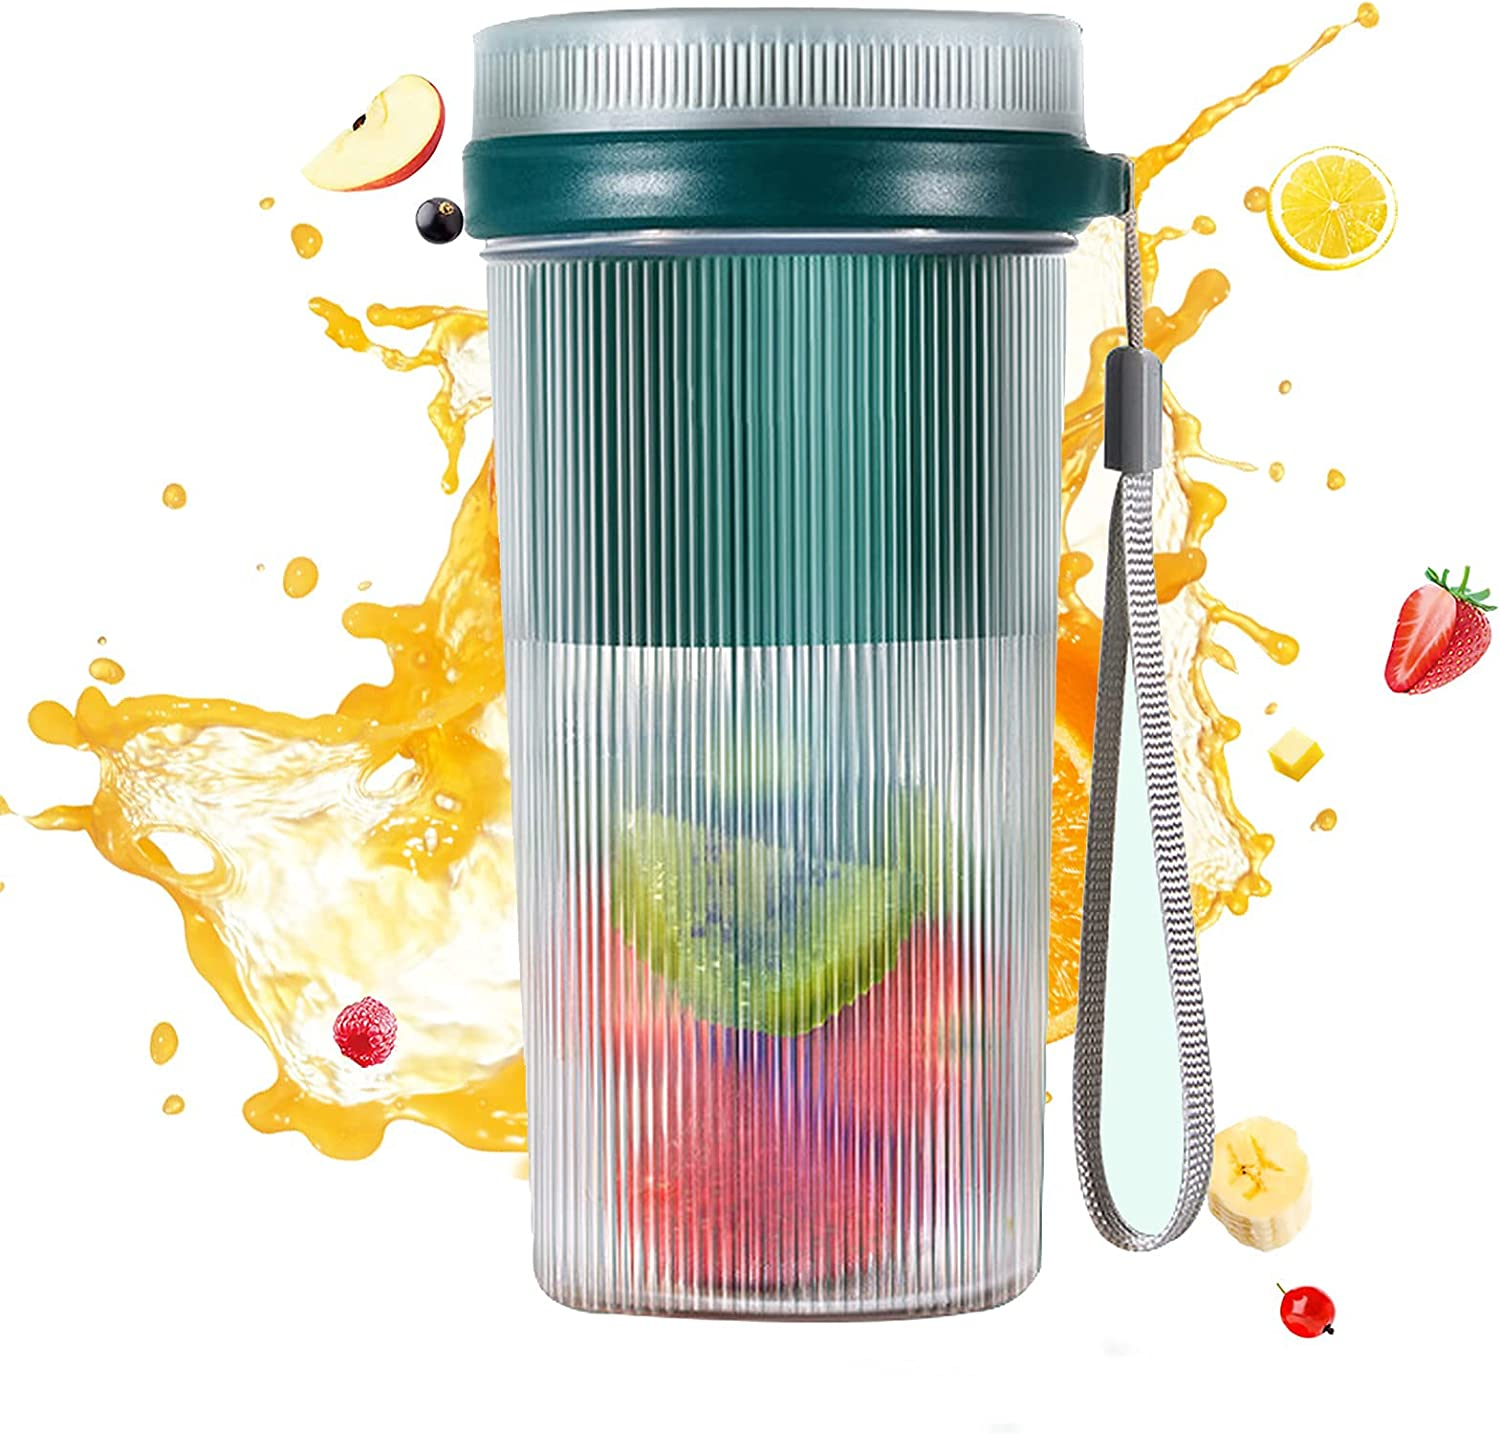 Portable Blender, Portable Blender for Shakes and Smoothies , Blender on the go , Blender Cup Portable , PIQIUQUE Personal Size Blenders for Travel and Outdoor ( Navy Green )